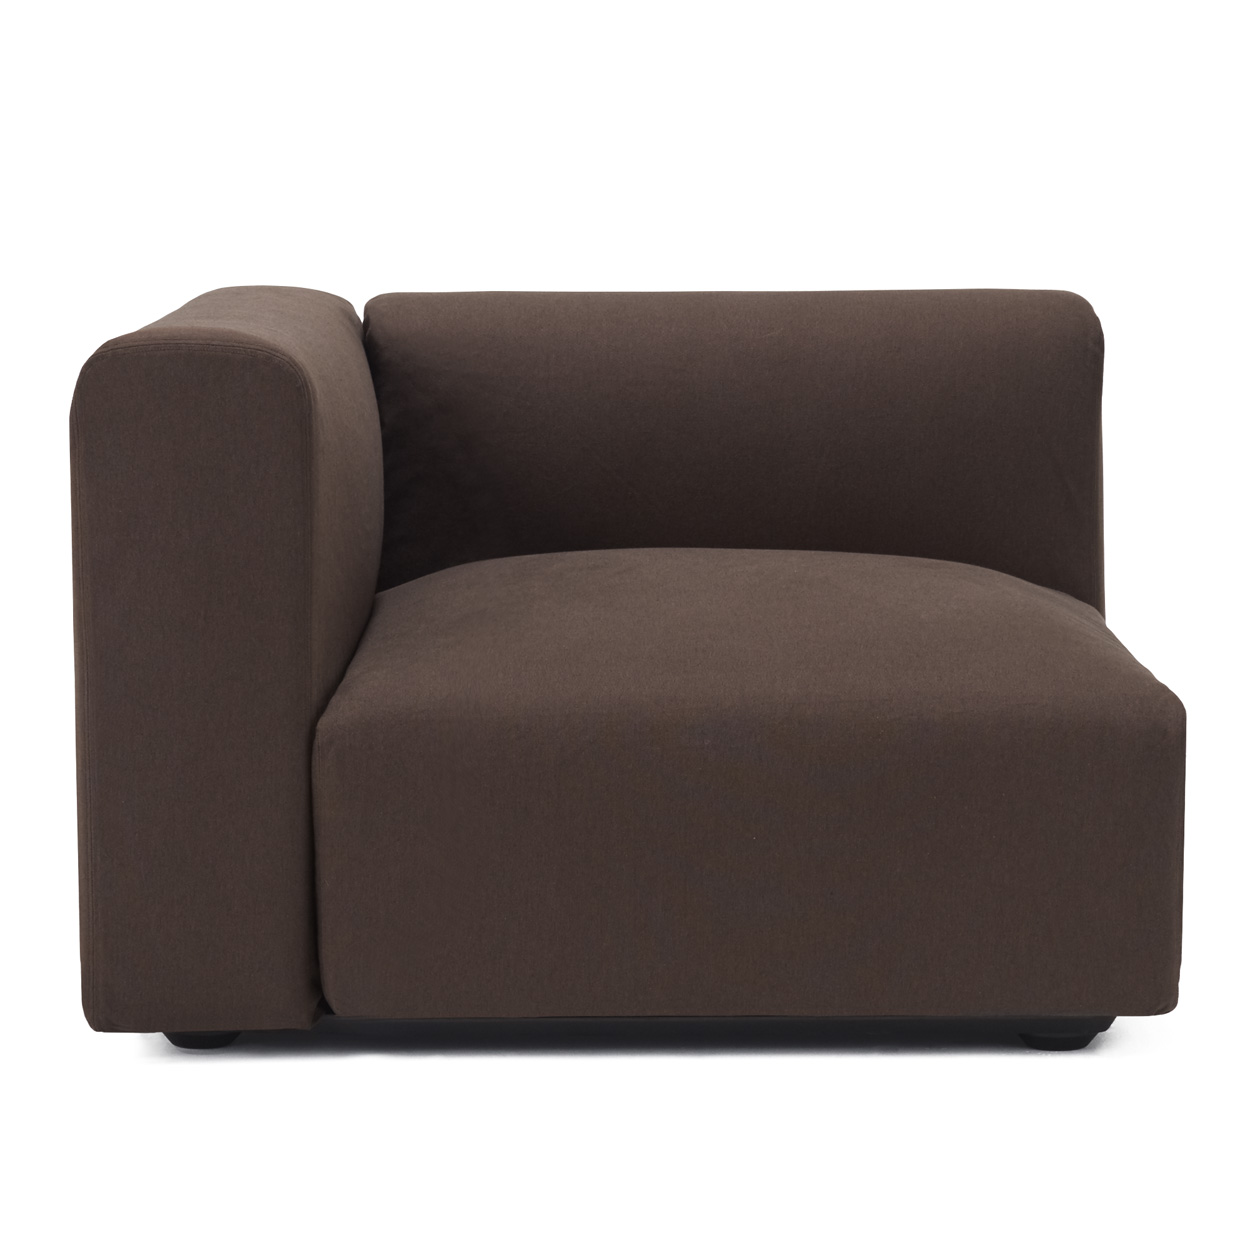 Enjoyable Cotton Cover For Unit Sofa With Armrest L Dark Br For Bralicious Painted Fabric Chair Ideas Braliciousco